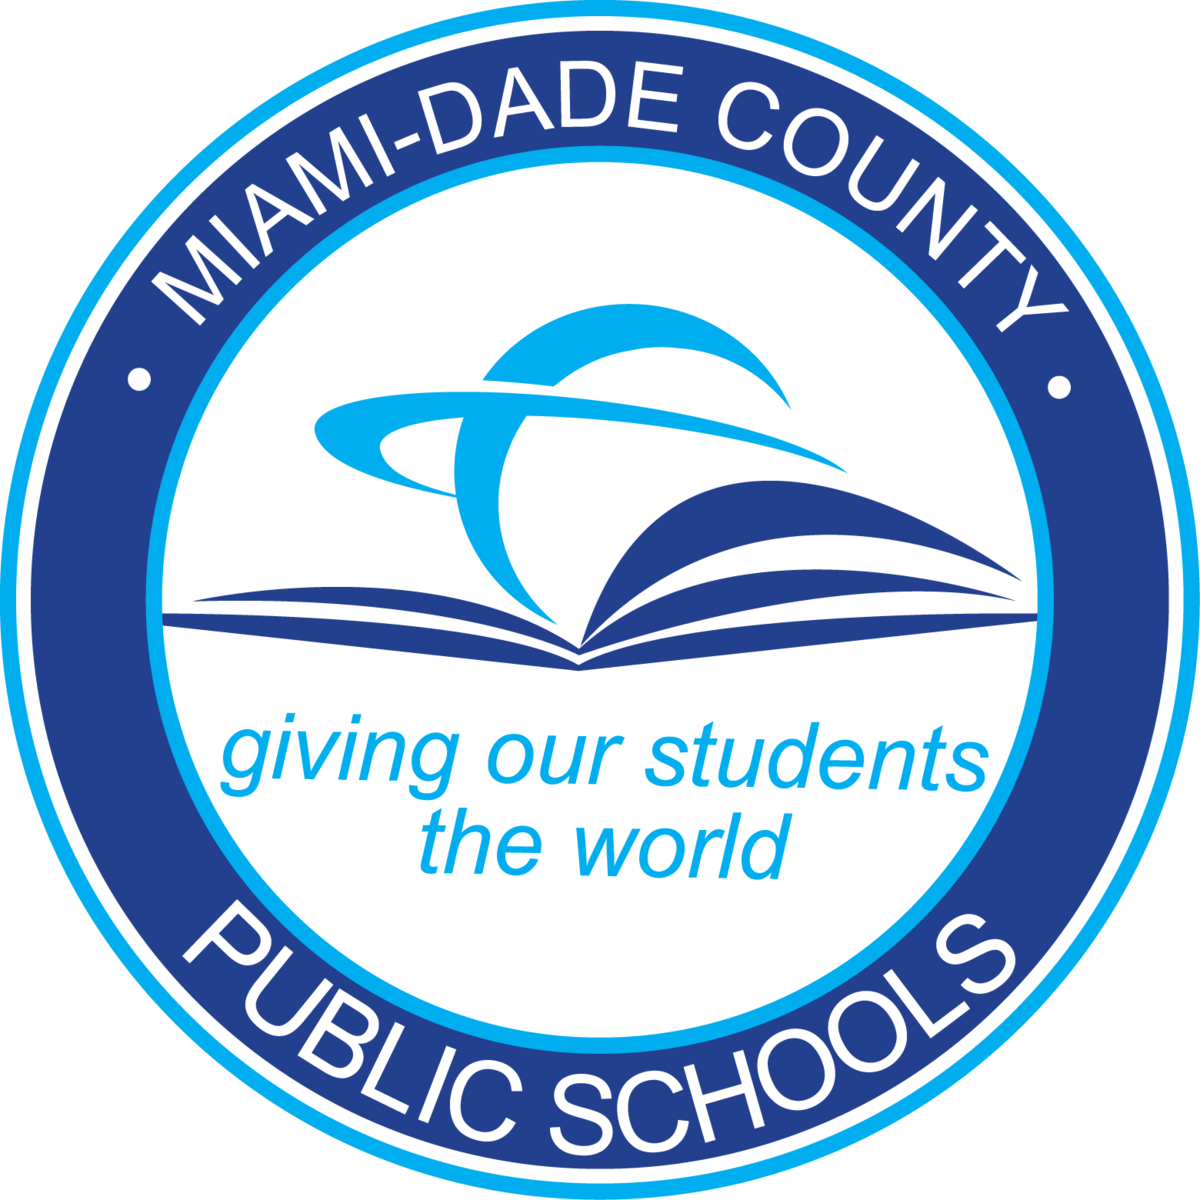 Miami_Dade_County_Public_School_District.png